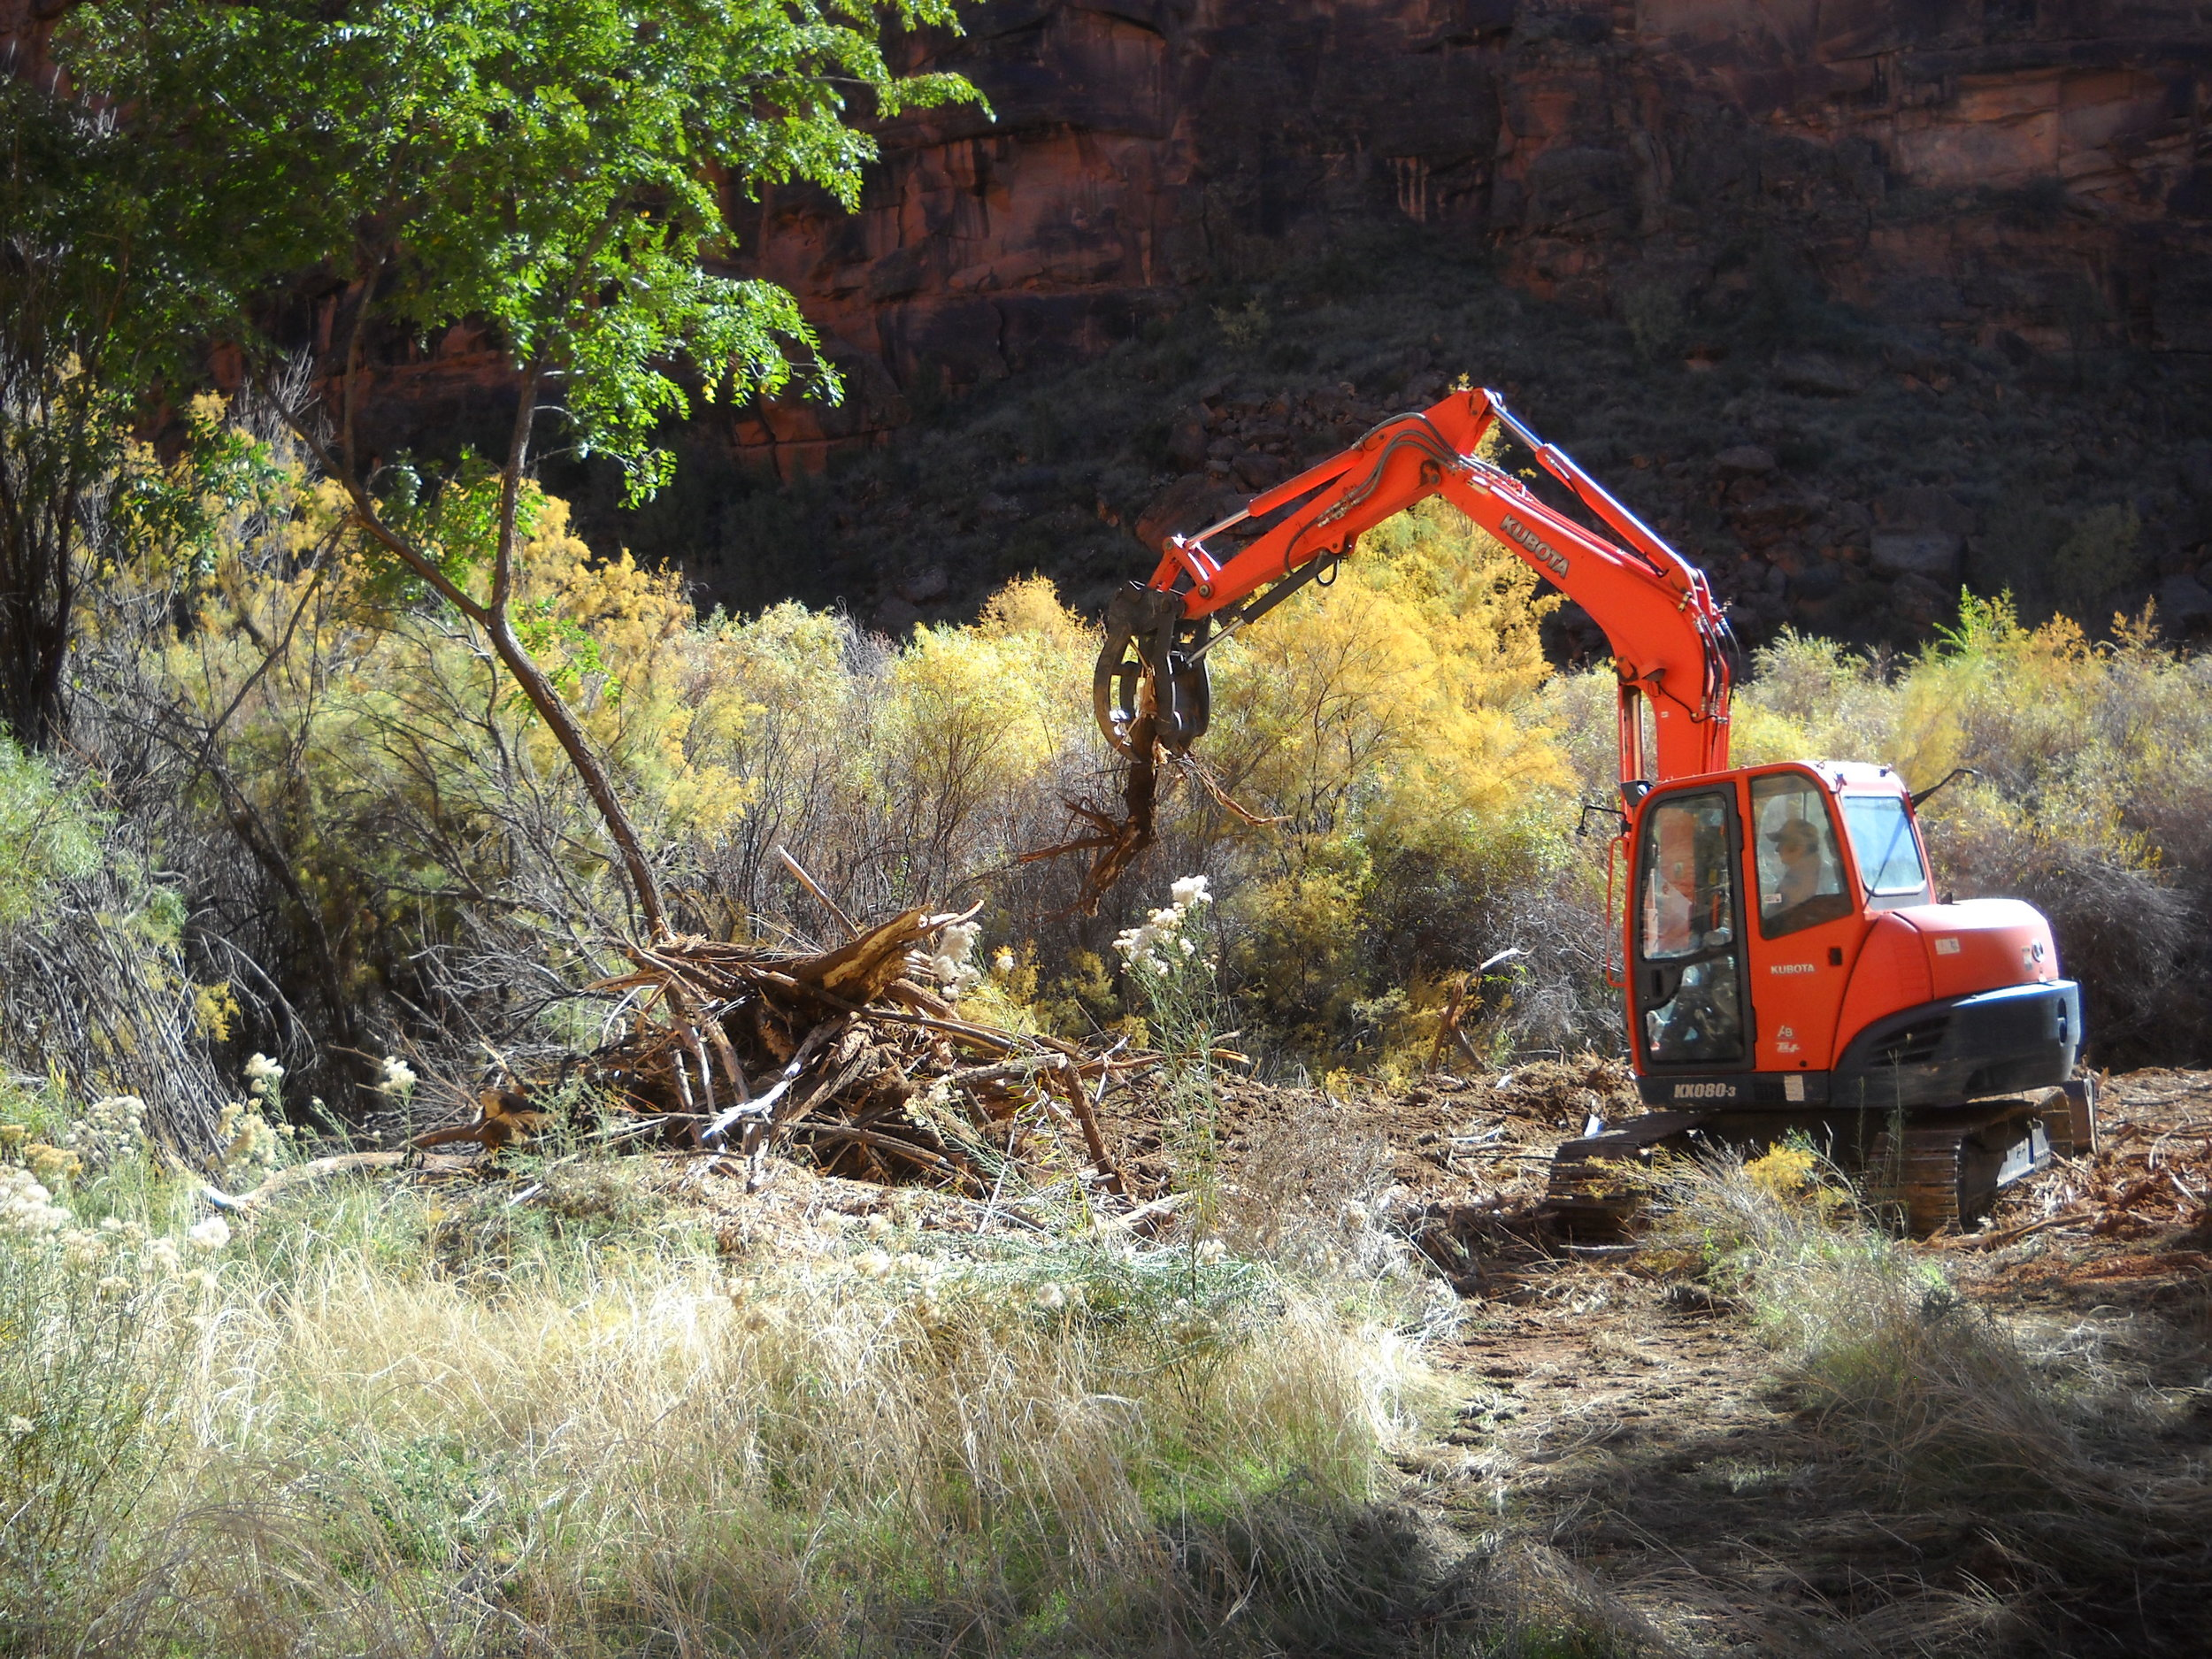 Figure 3. Excavators with a grapple are used to remove tamarisk and other woody invasive plants, and pile debris for burning.